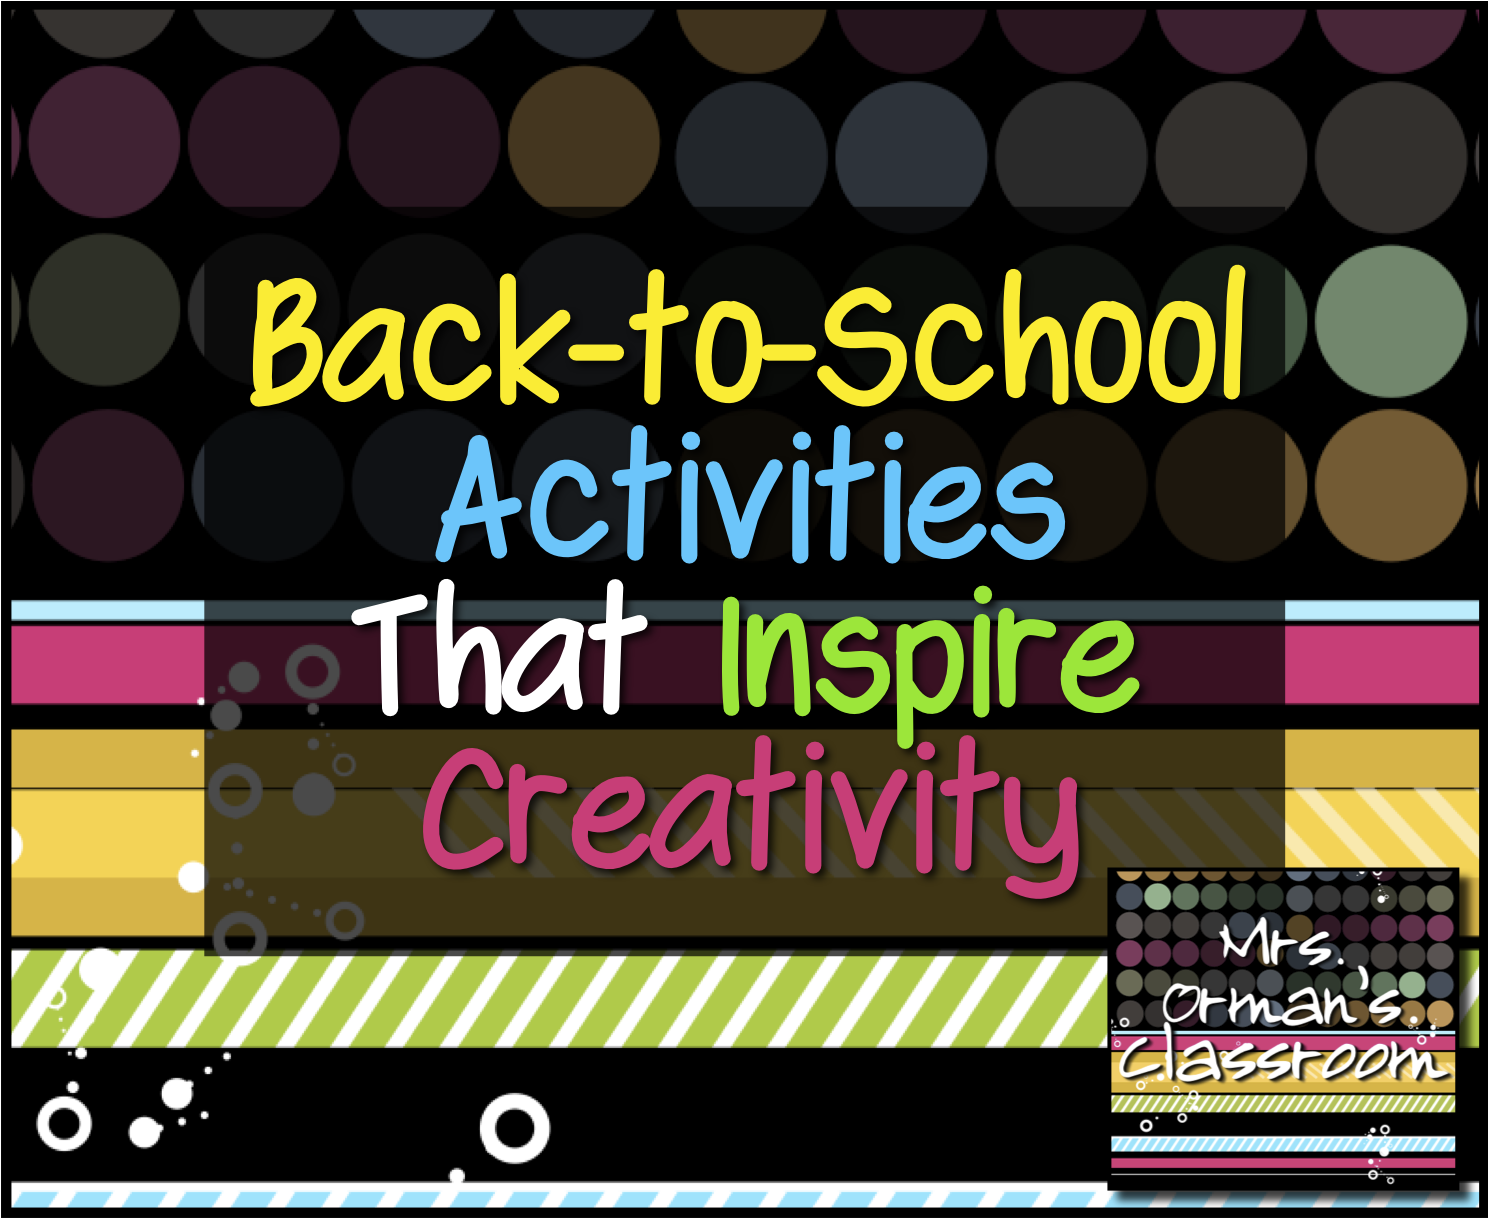 Classroom Ideas Back To School ~ Mrs orman s classroom back to school activities